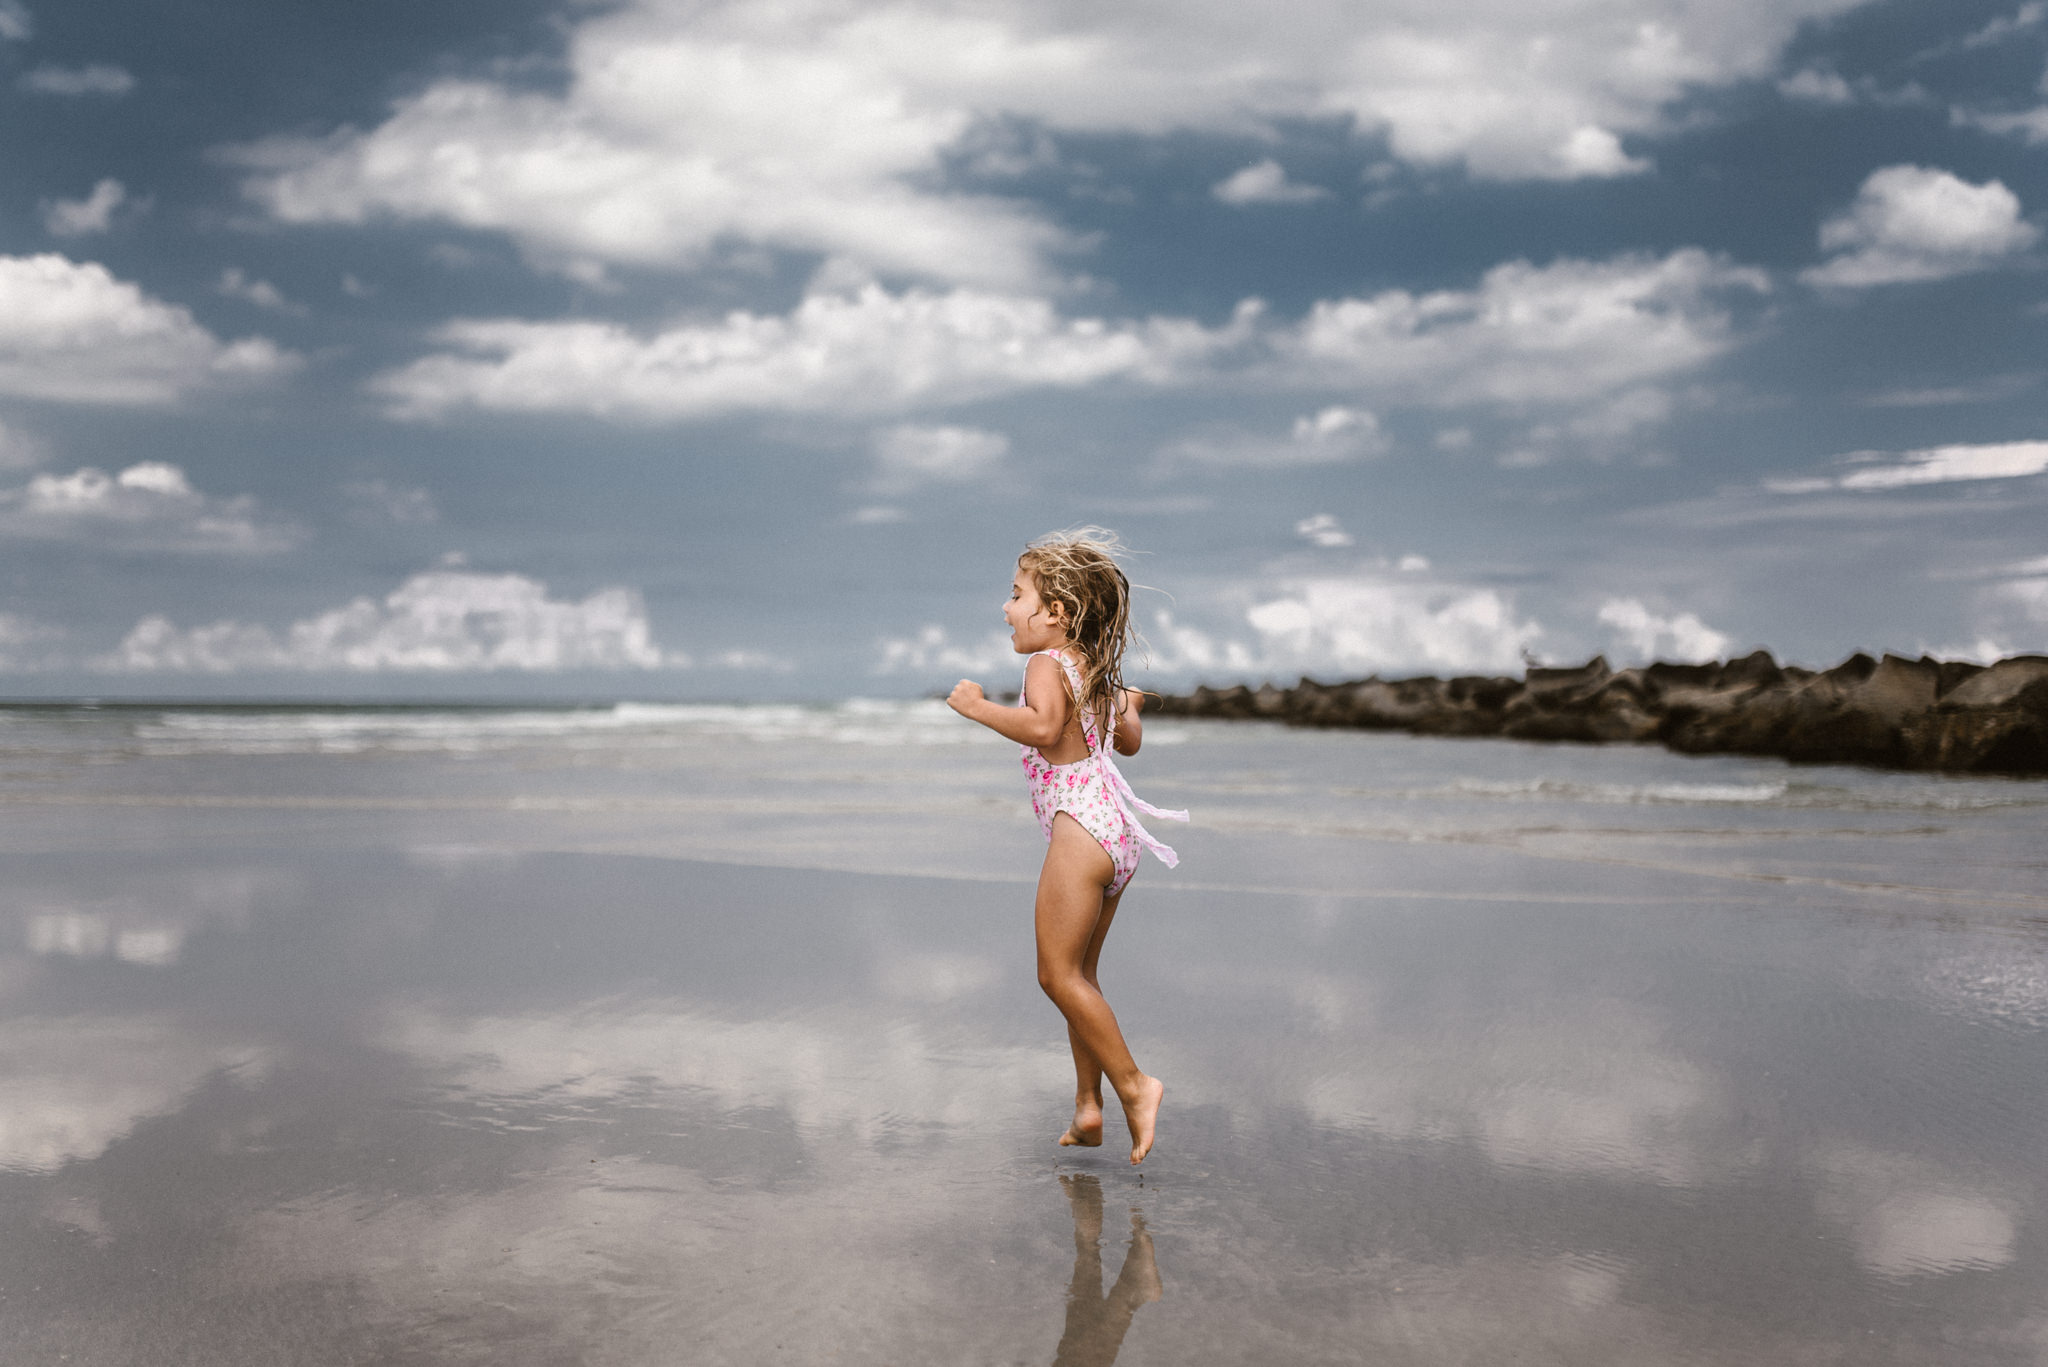 twyla jones photography - kids plalying at the beach in florida-9582.jpg